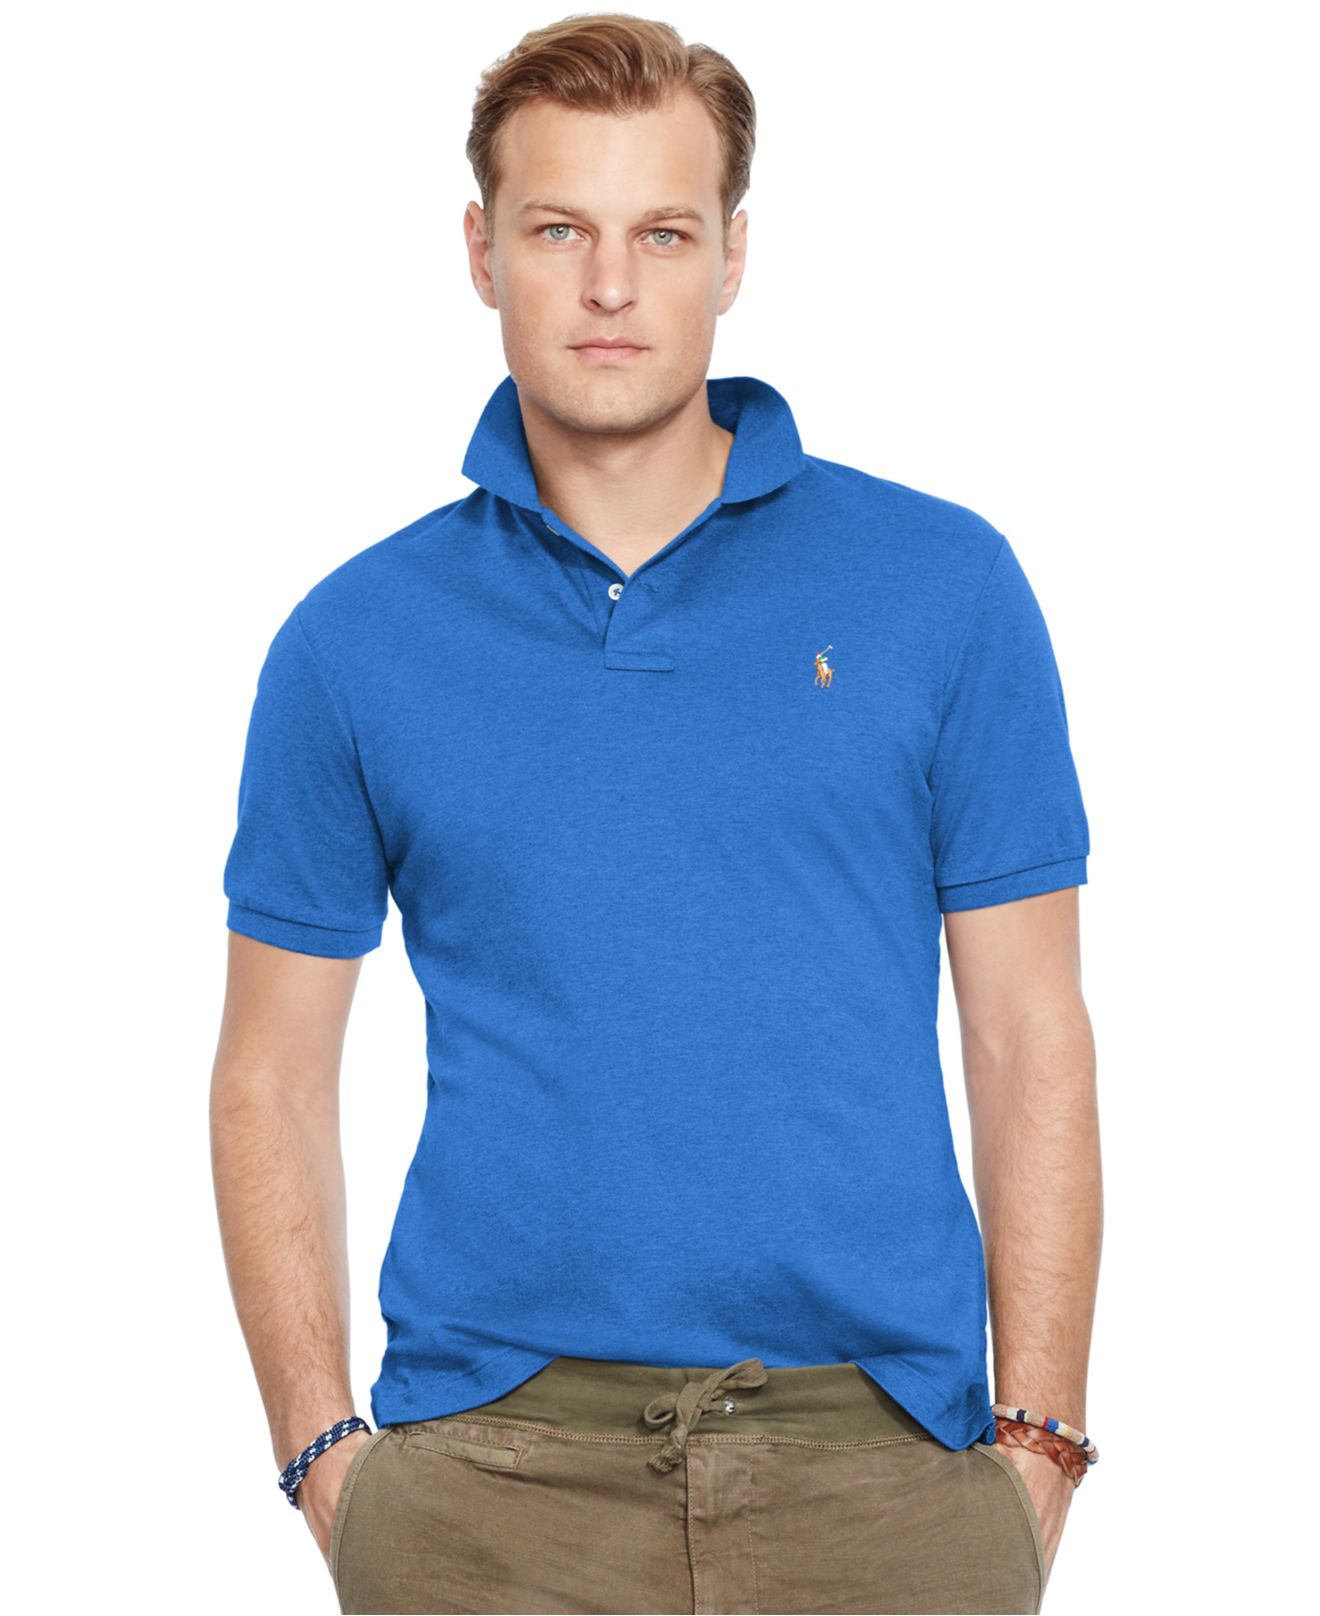 Polo ralph lauren big and tall pima soft touch polo shirt for Tall ralph lauren polo shirts